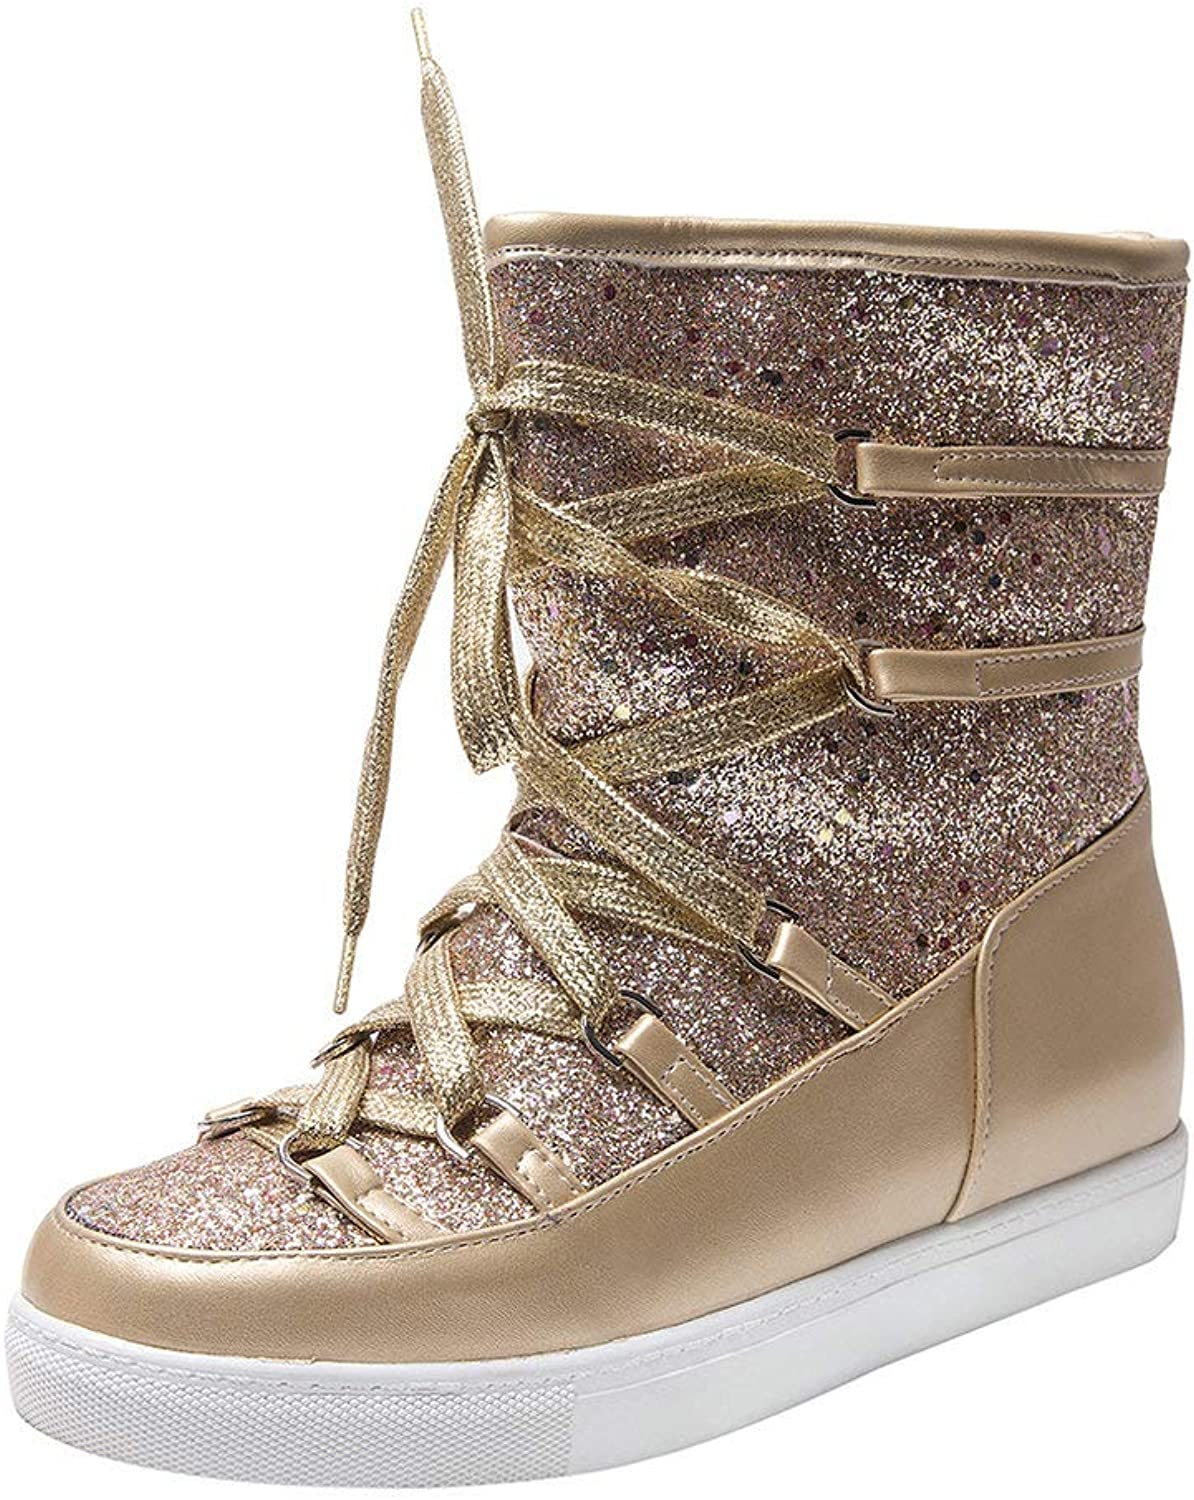 AnMengXinLing Glitter Snow Boot Women Fur Lined Strappy Ankle Cross Strap Waterproof Winter Wedge Short Booties Round Toe gold Silver